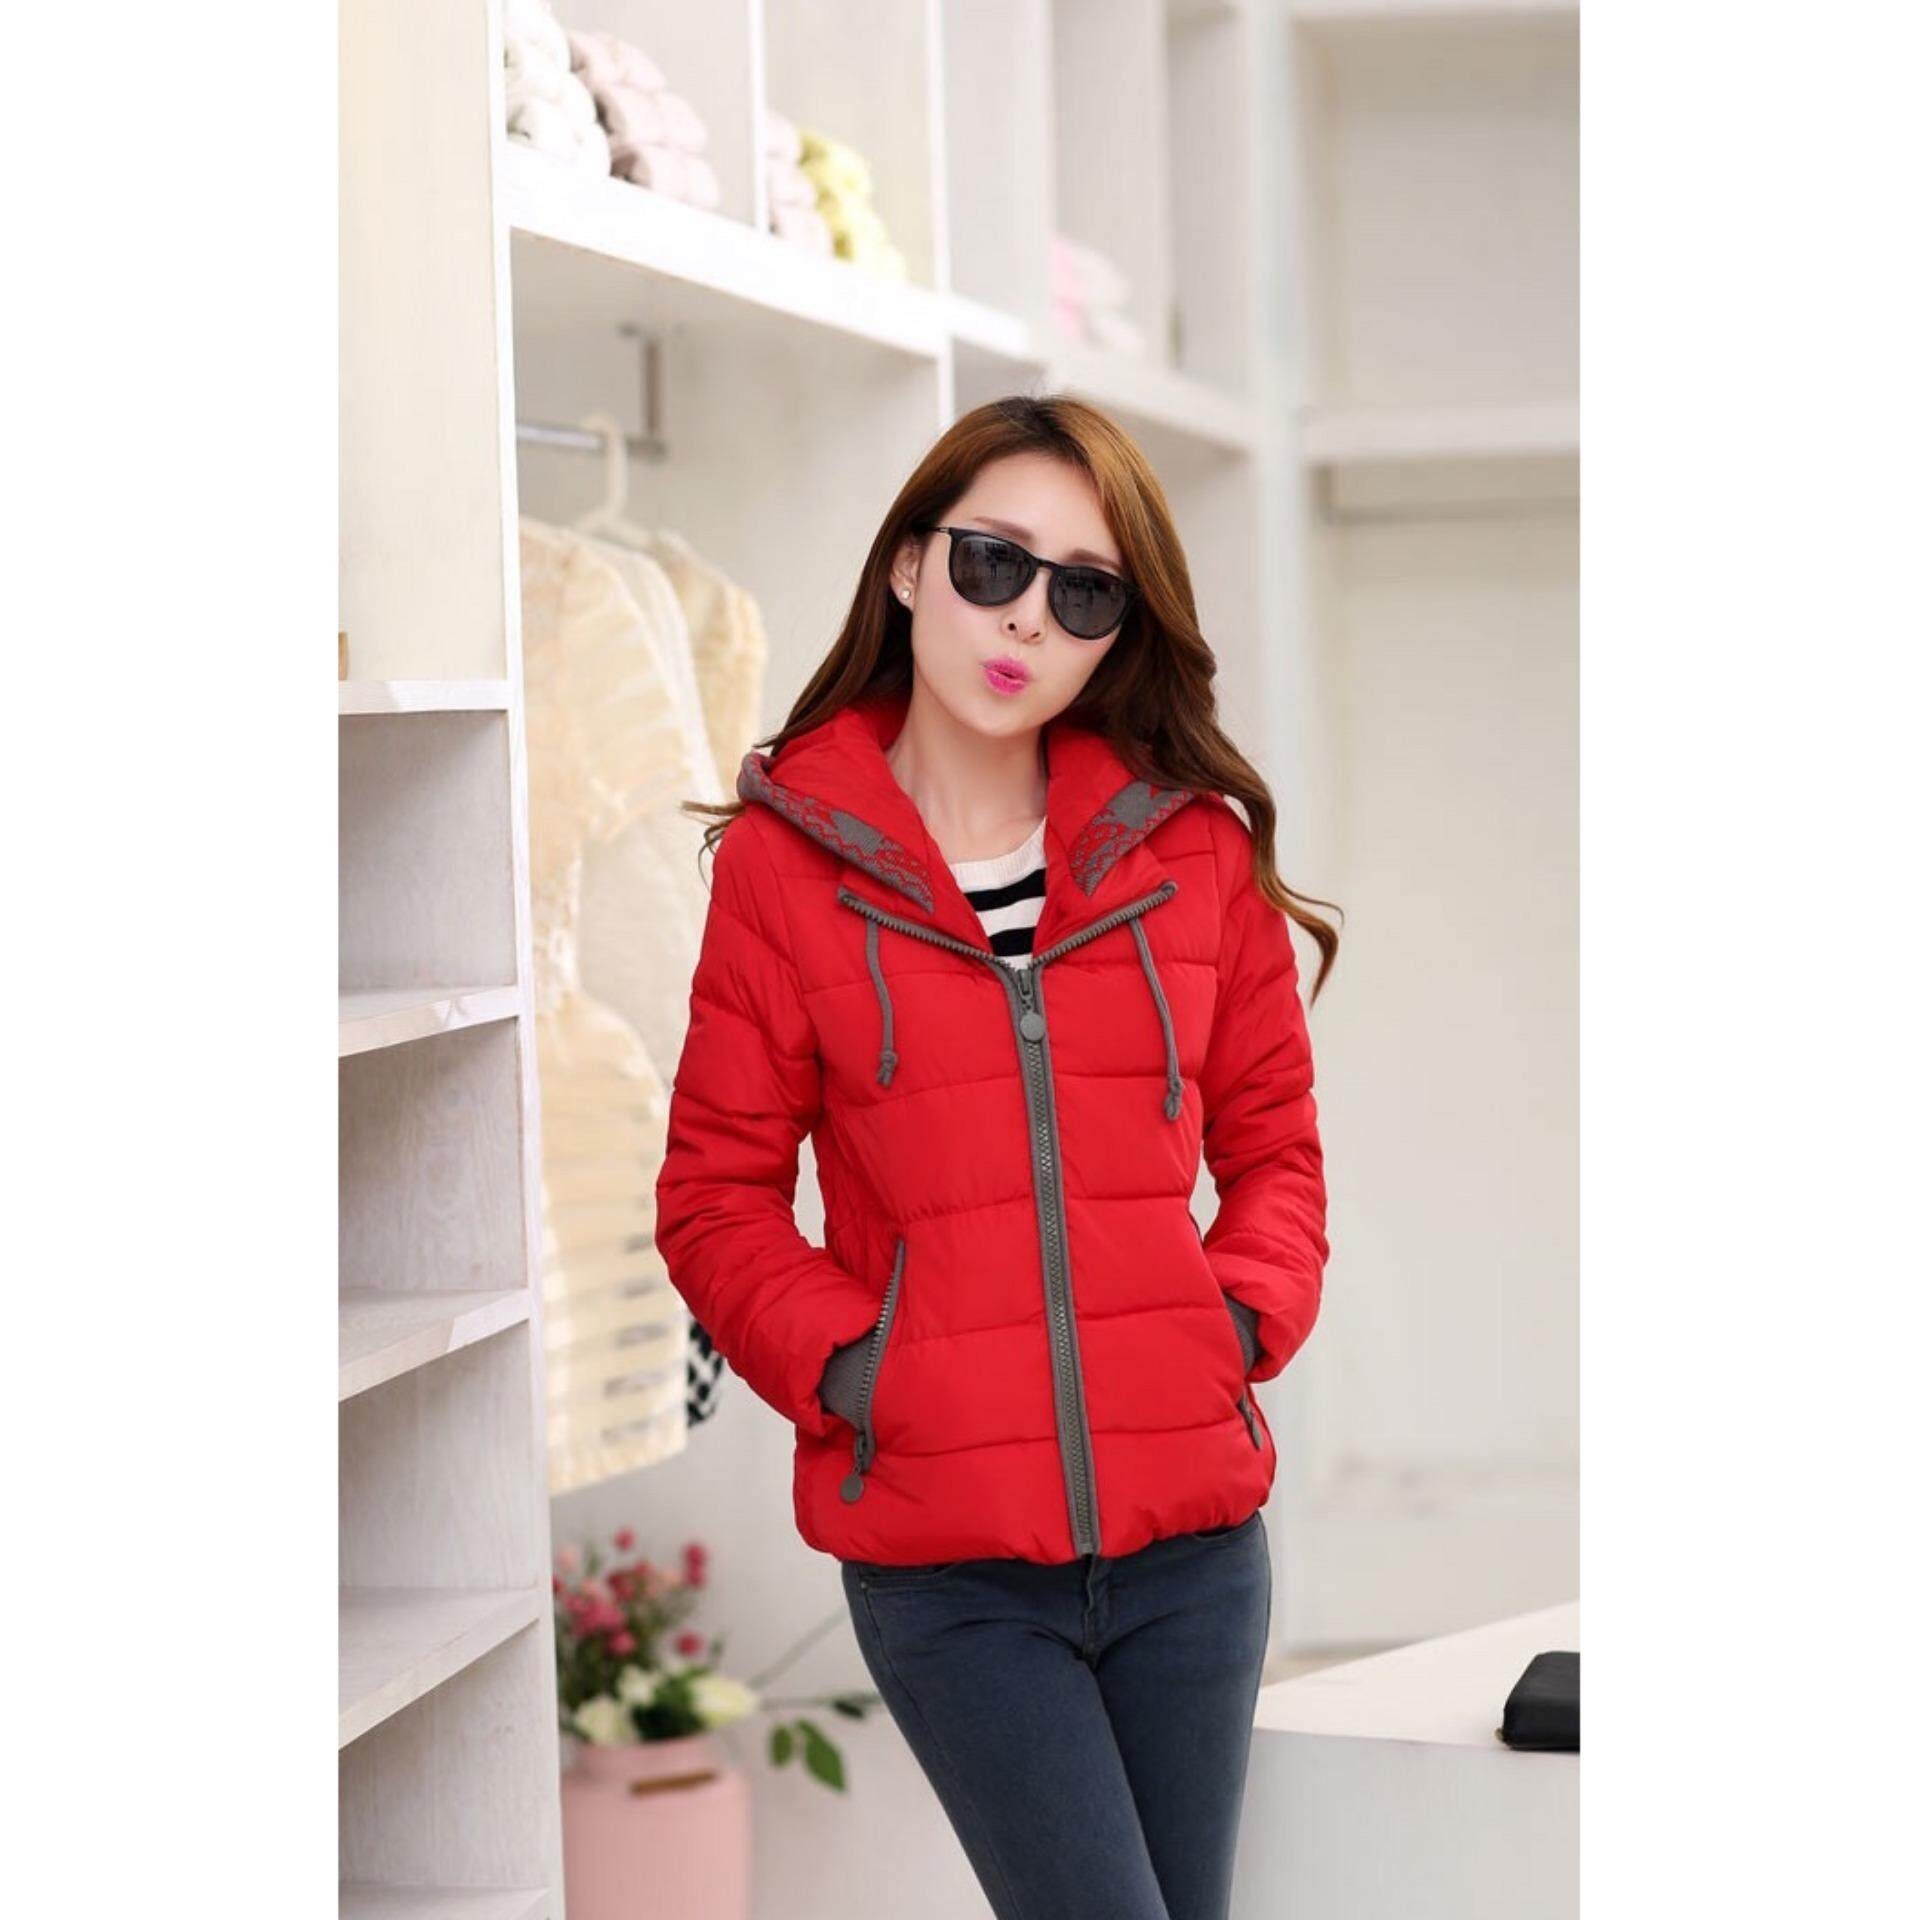 a96acc7097eb5 Women s Down Jackets - Buy Women s Down Jackets at Best Price in ...